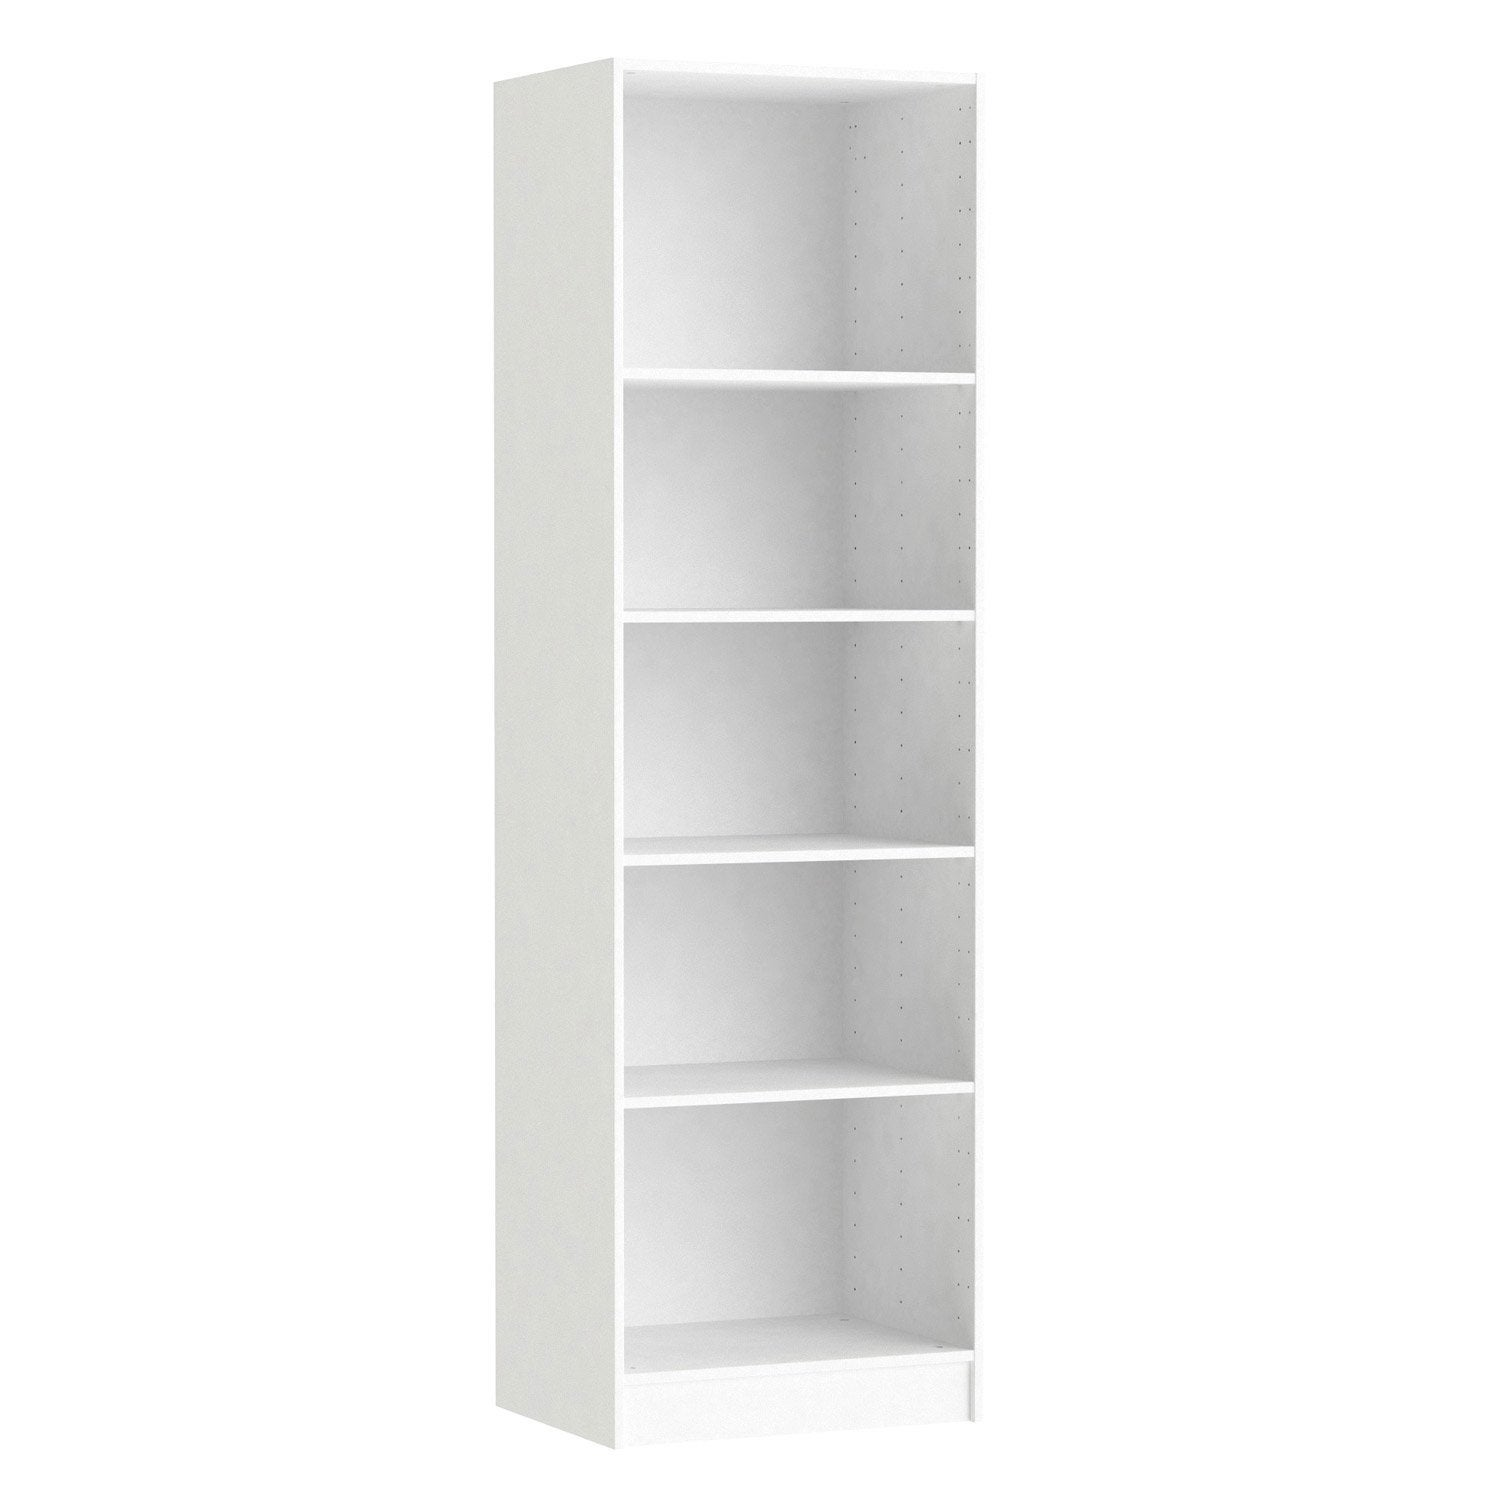 Caisson spaceo home 200 x 60 x 45 cm blanc leroy merlin - Amenagement de placard castorama ...